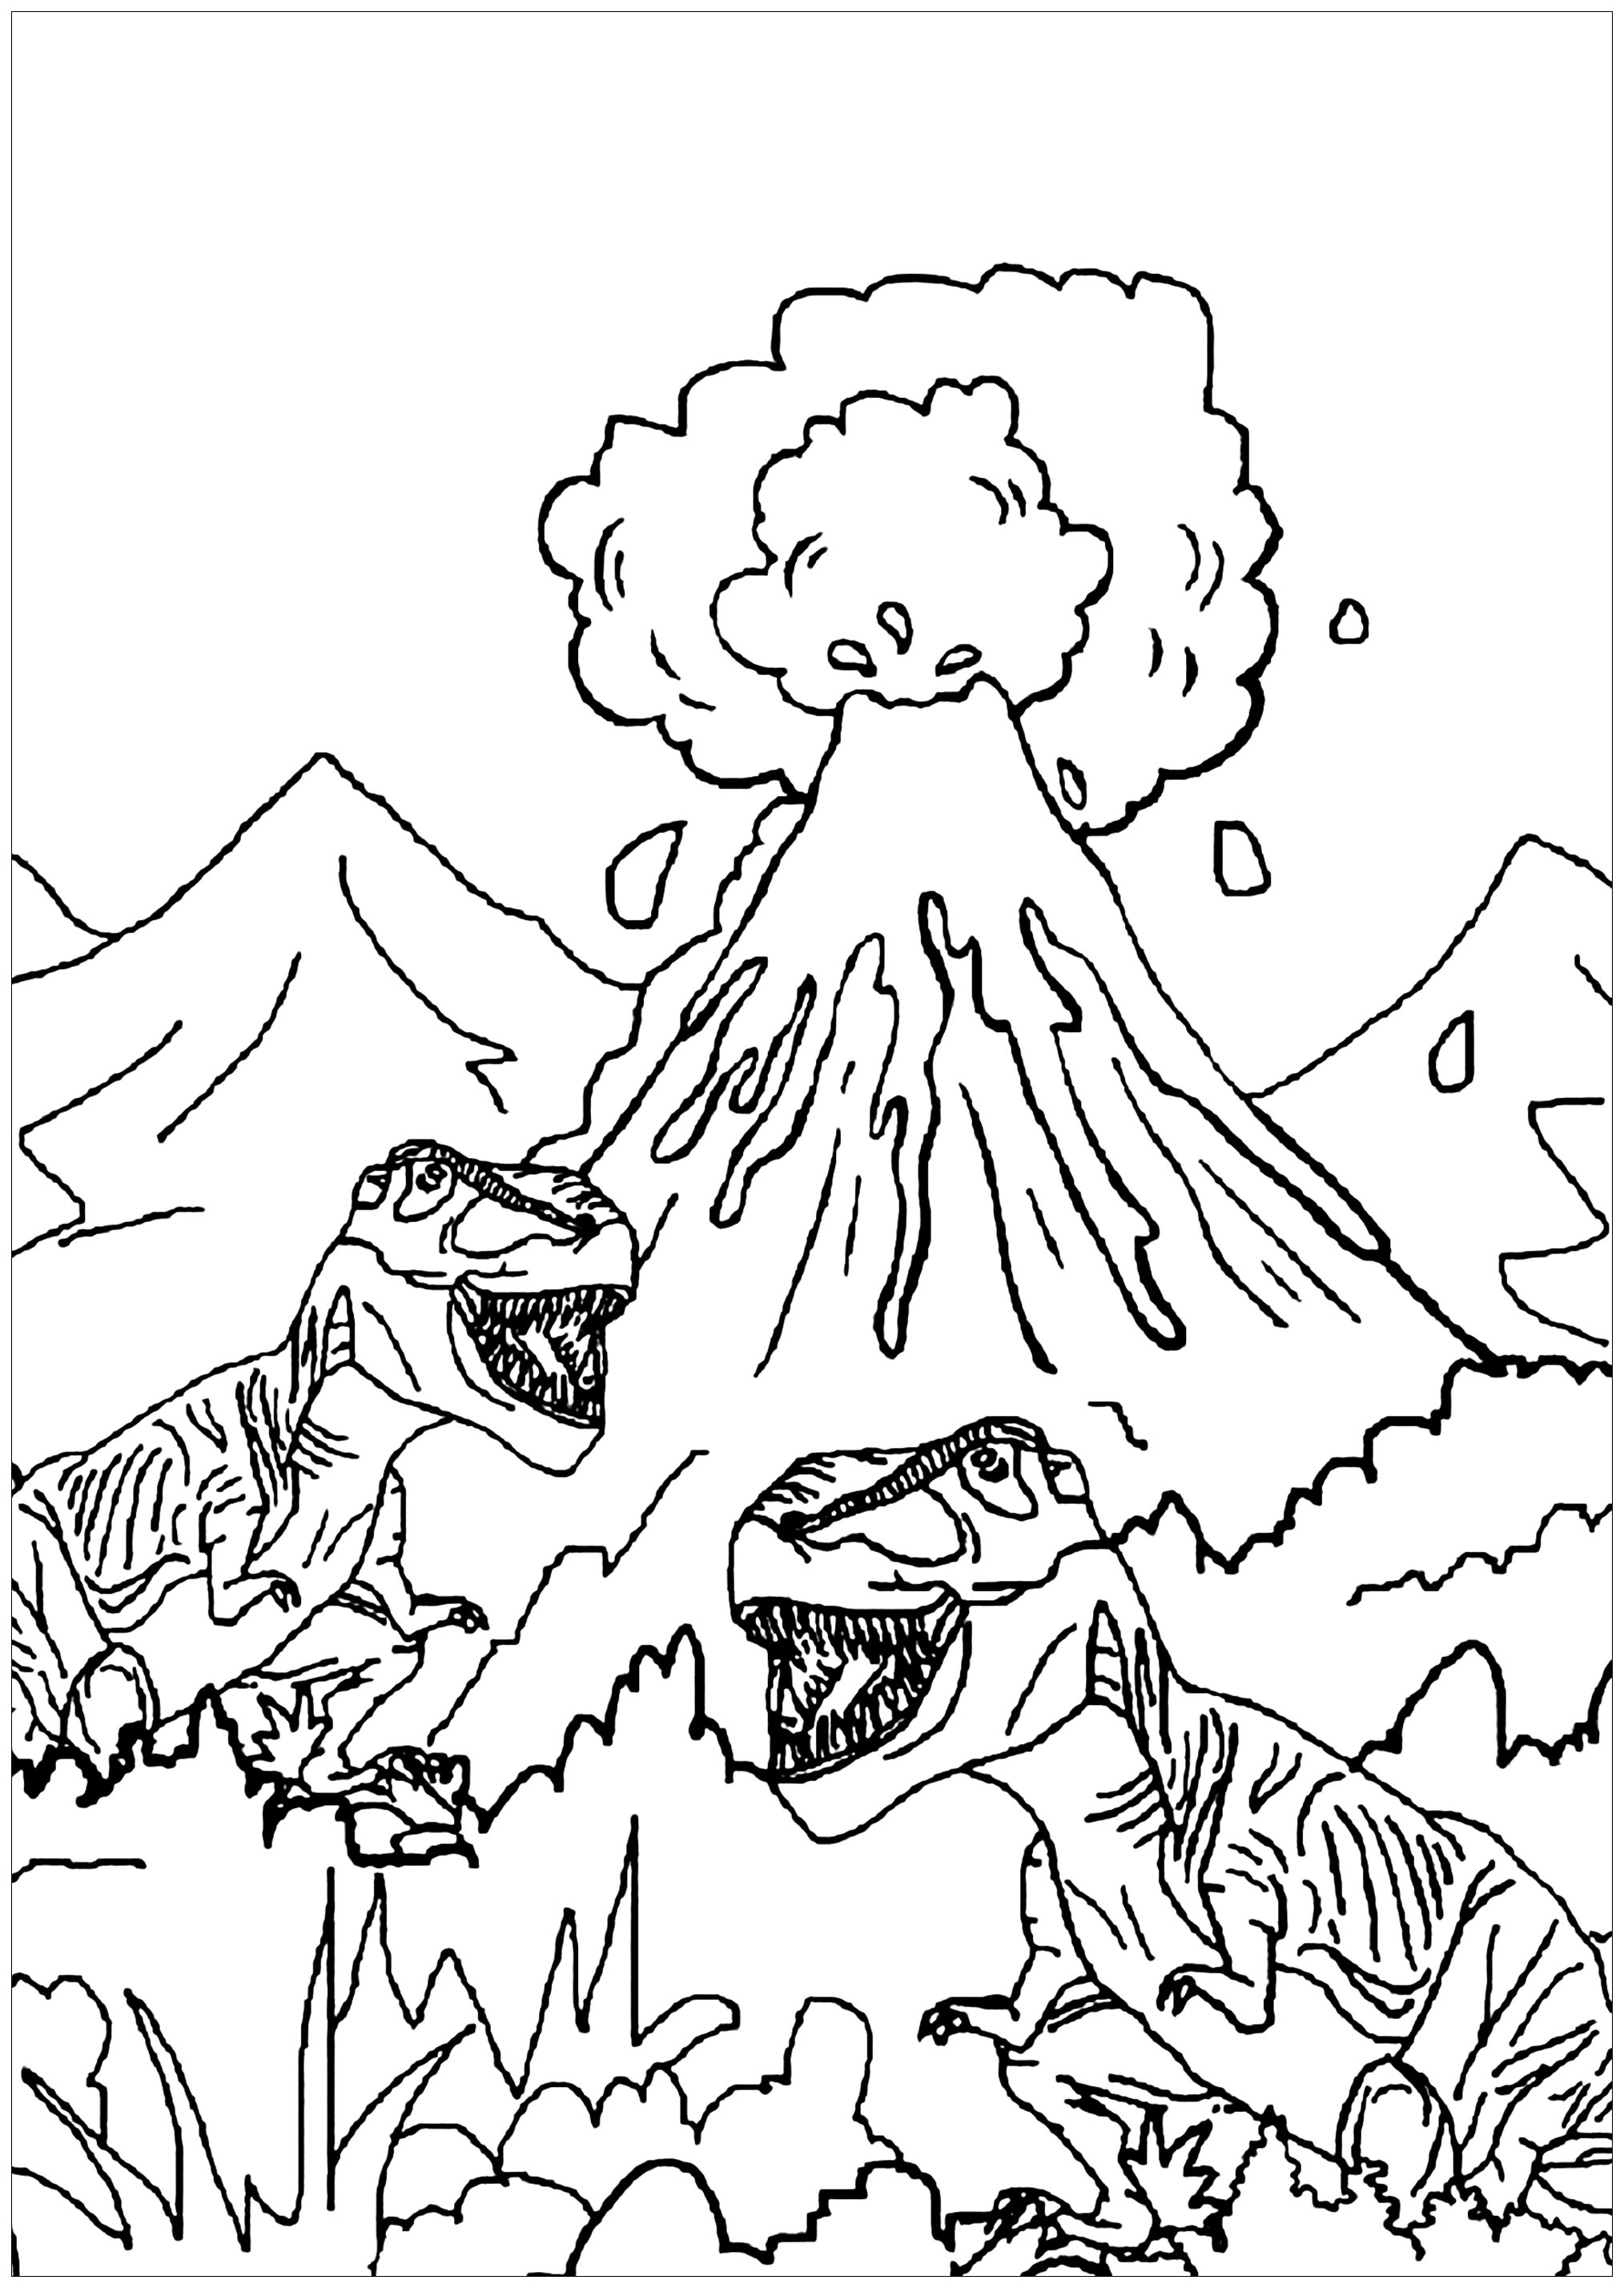 Run out of disaster Coloring Page